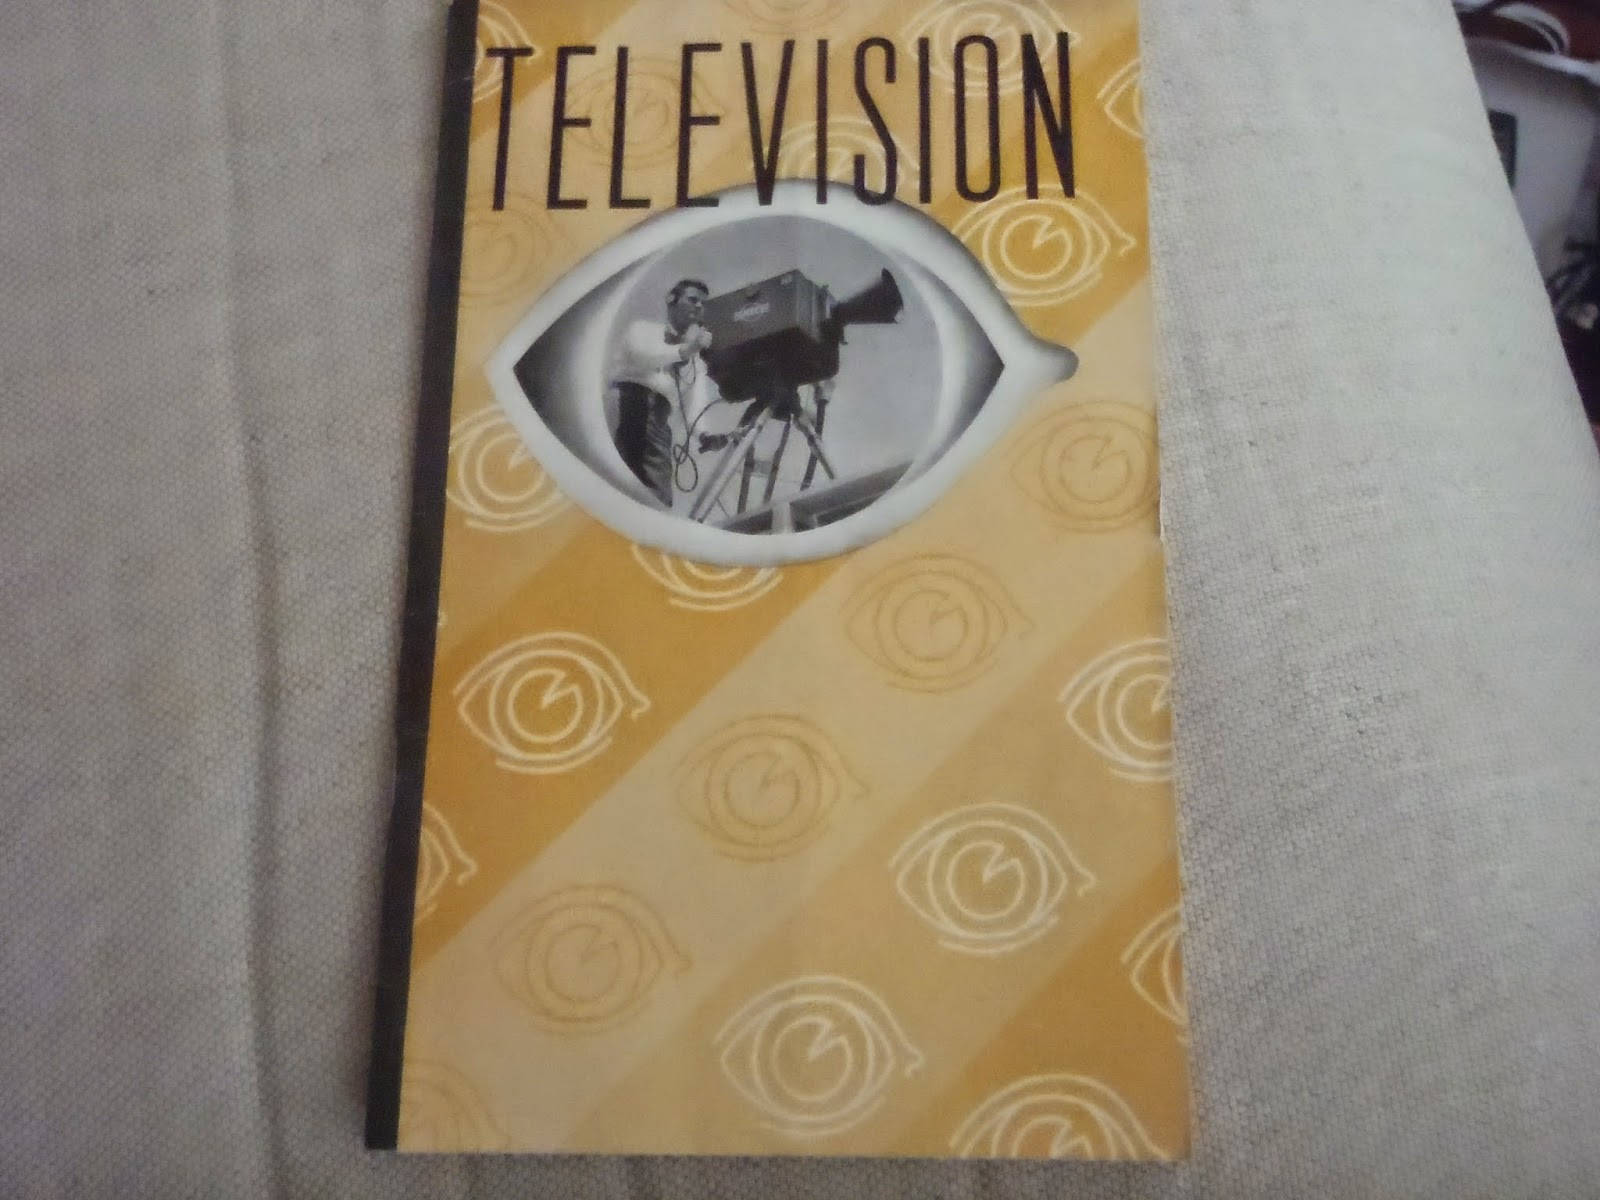 At 30 Rock In Conjunction With The 1939 Worlds Fair Notice NBCs Use Of An Eye On Cover Which Course Later Became A Symbol Associated CBS